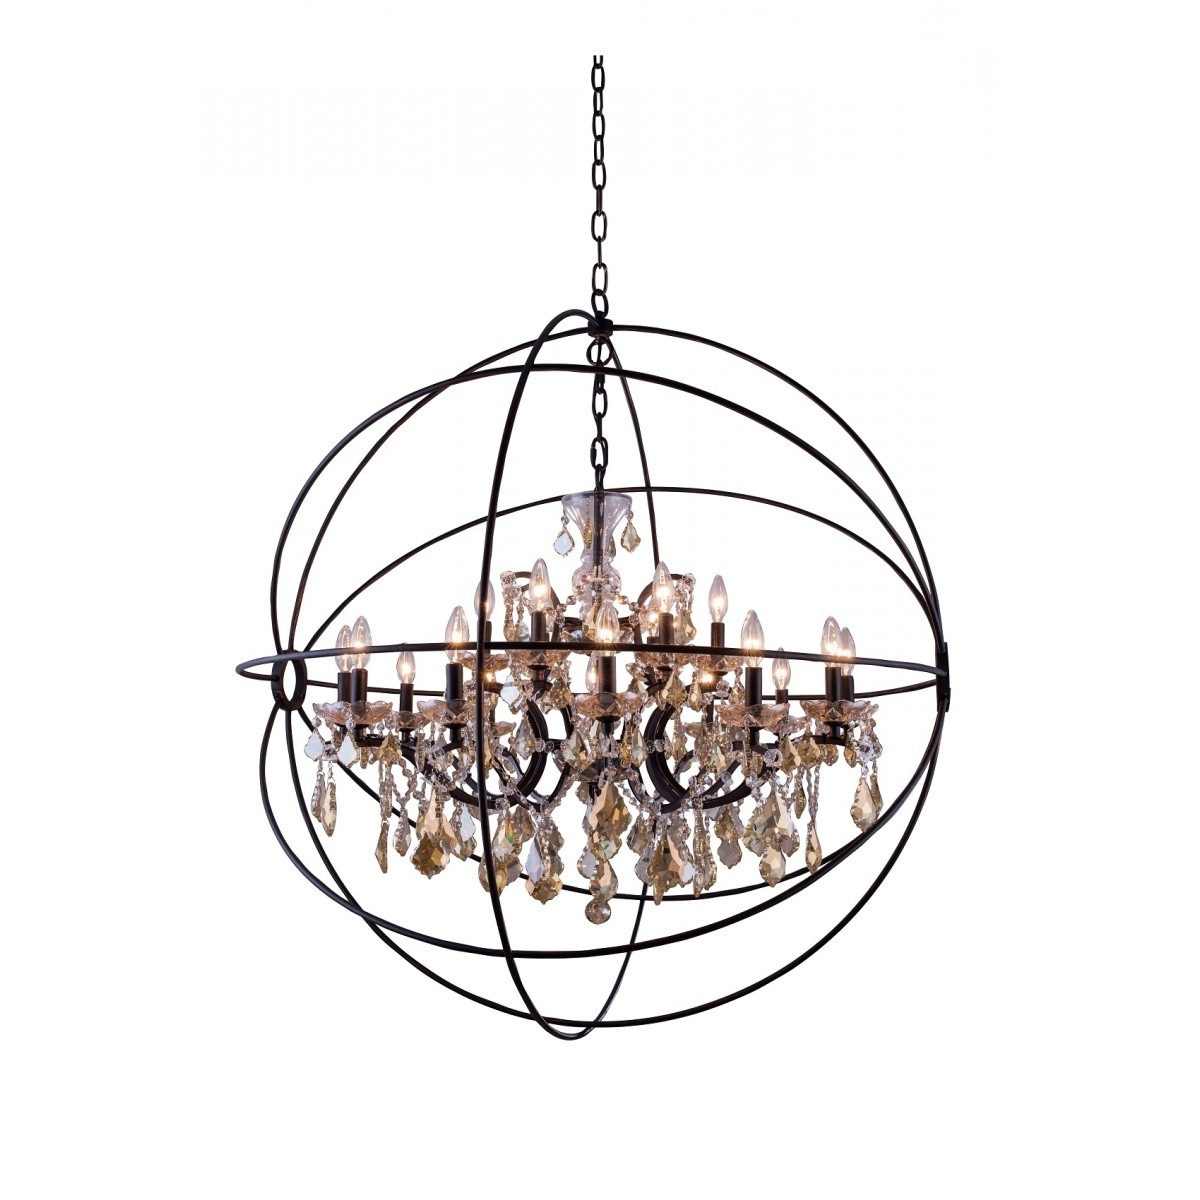 Large Globe Chandelier In Most Popular Lighting: Large Bronze Iron Crystal Orb Chandelier With 15 Light For (View 7 of 15)